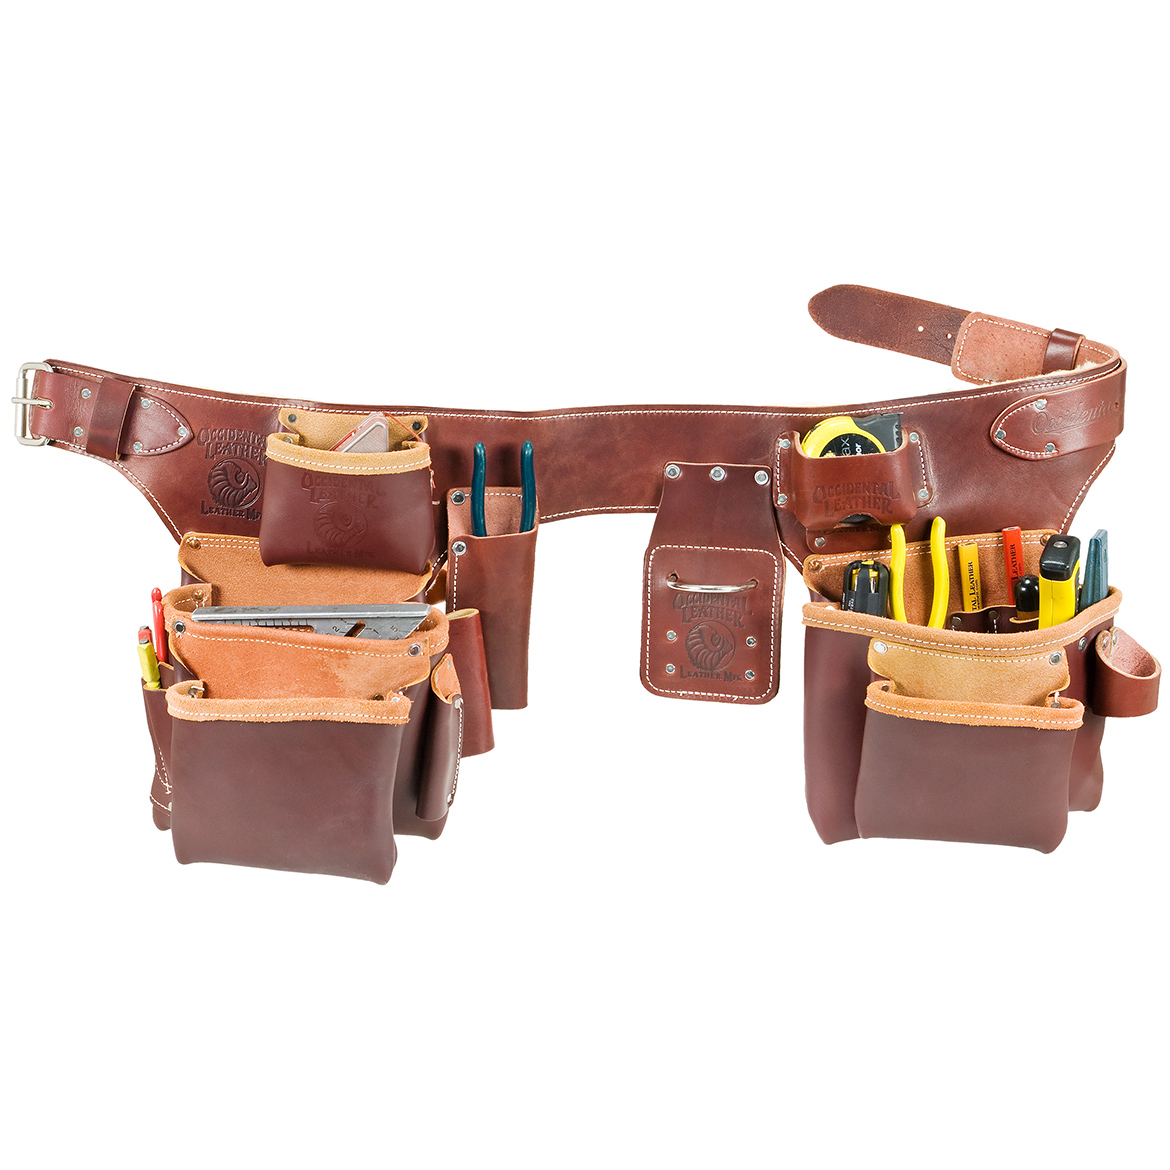 occidental leather 5191lg pro carpenter 5 bag assembly